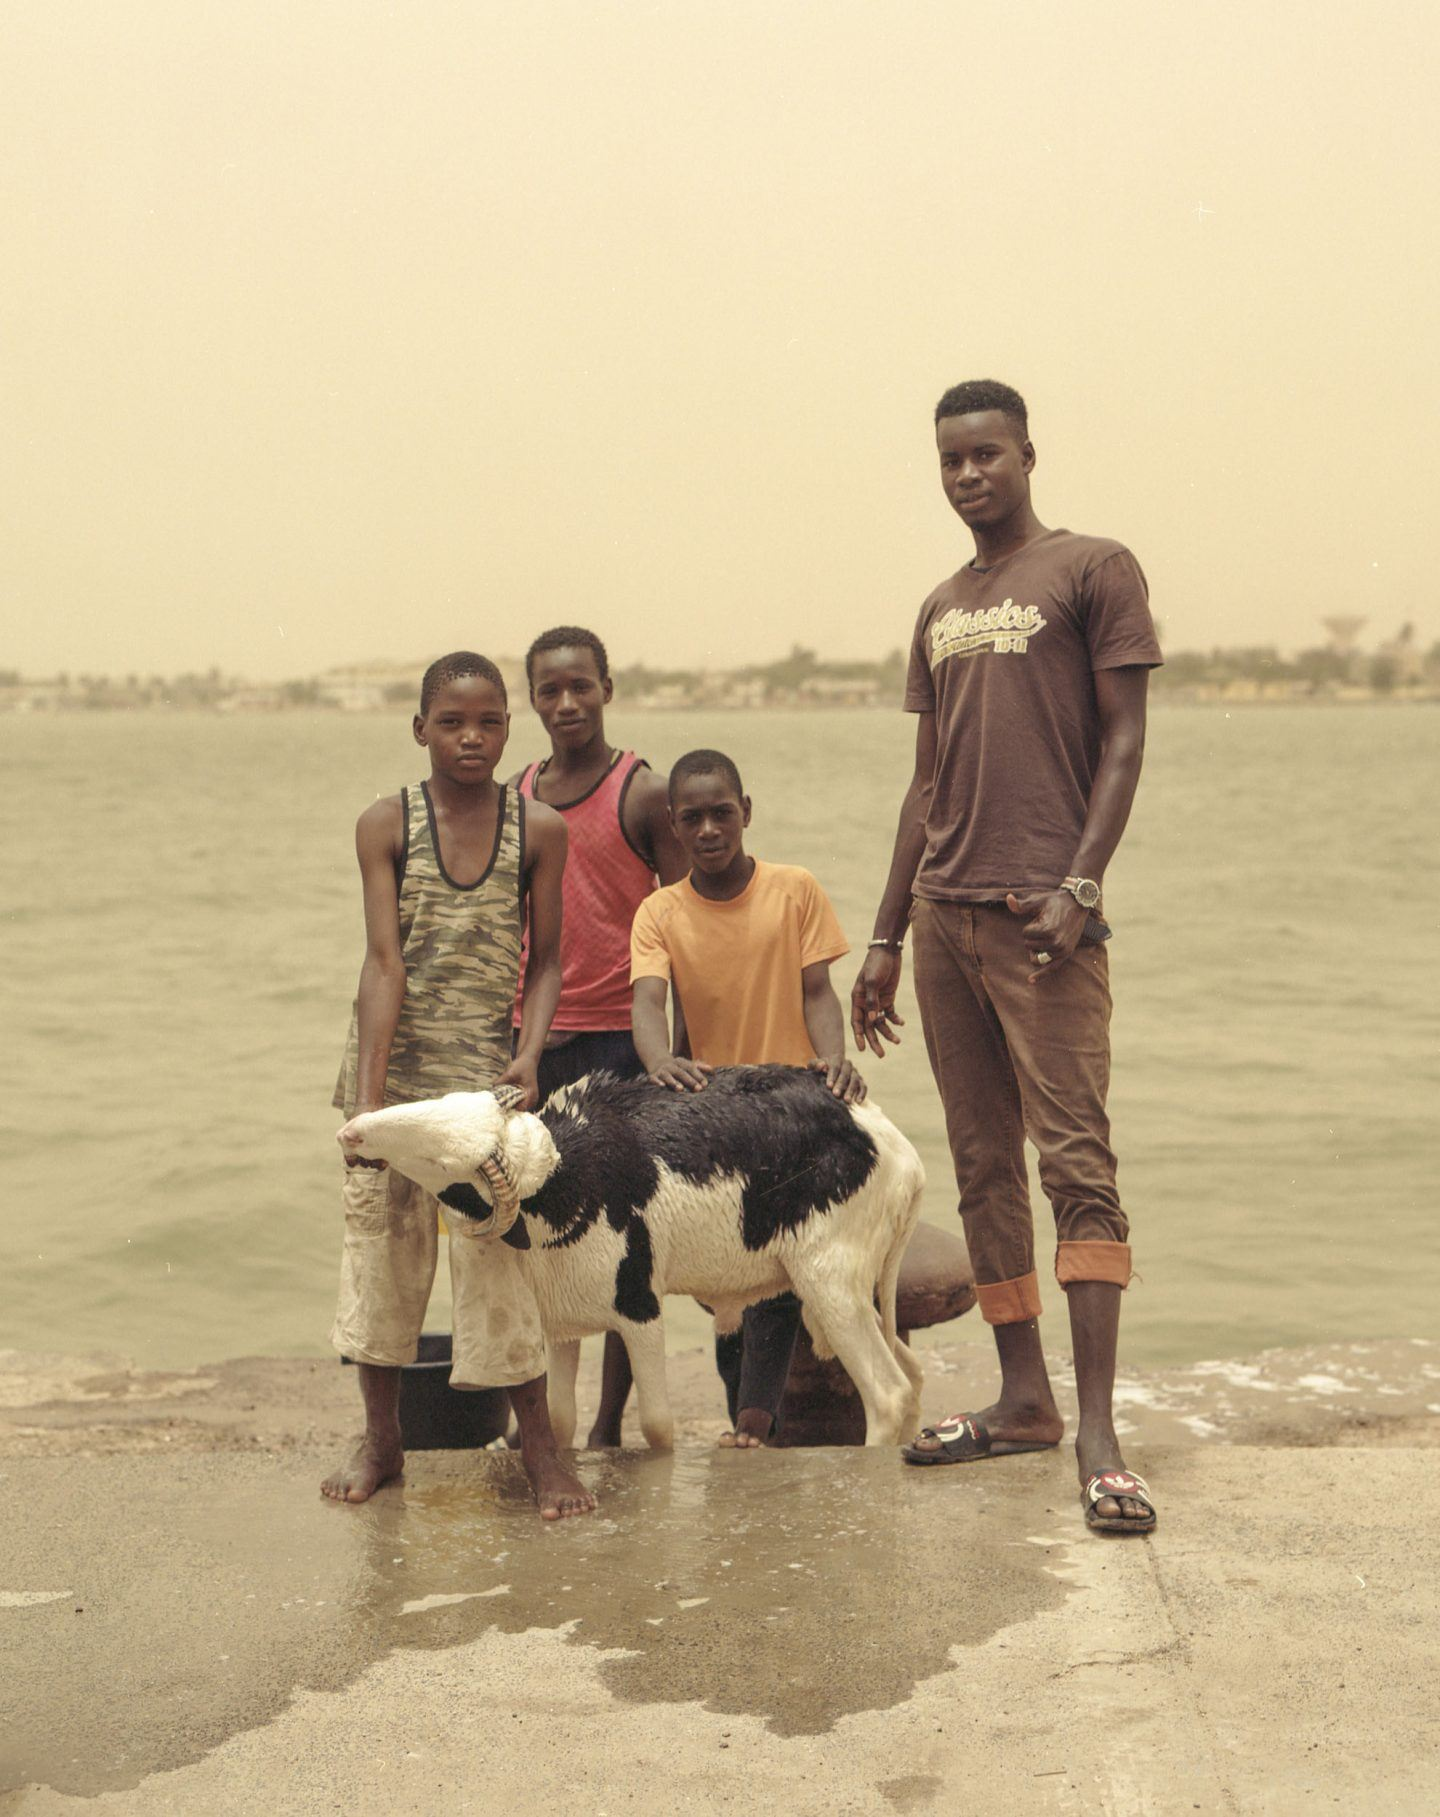 IGNANT-Photography-Mark-Rammers-Saint-Louis-Senegal-09